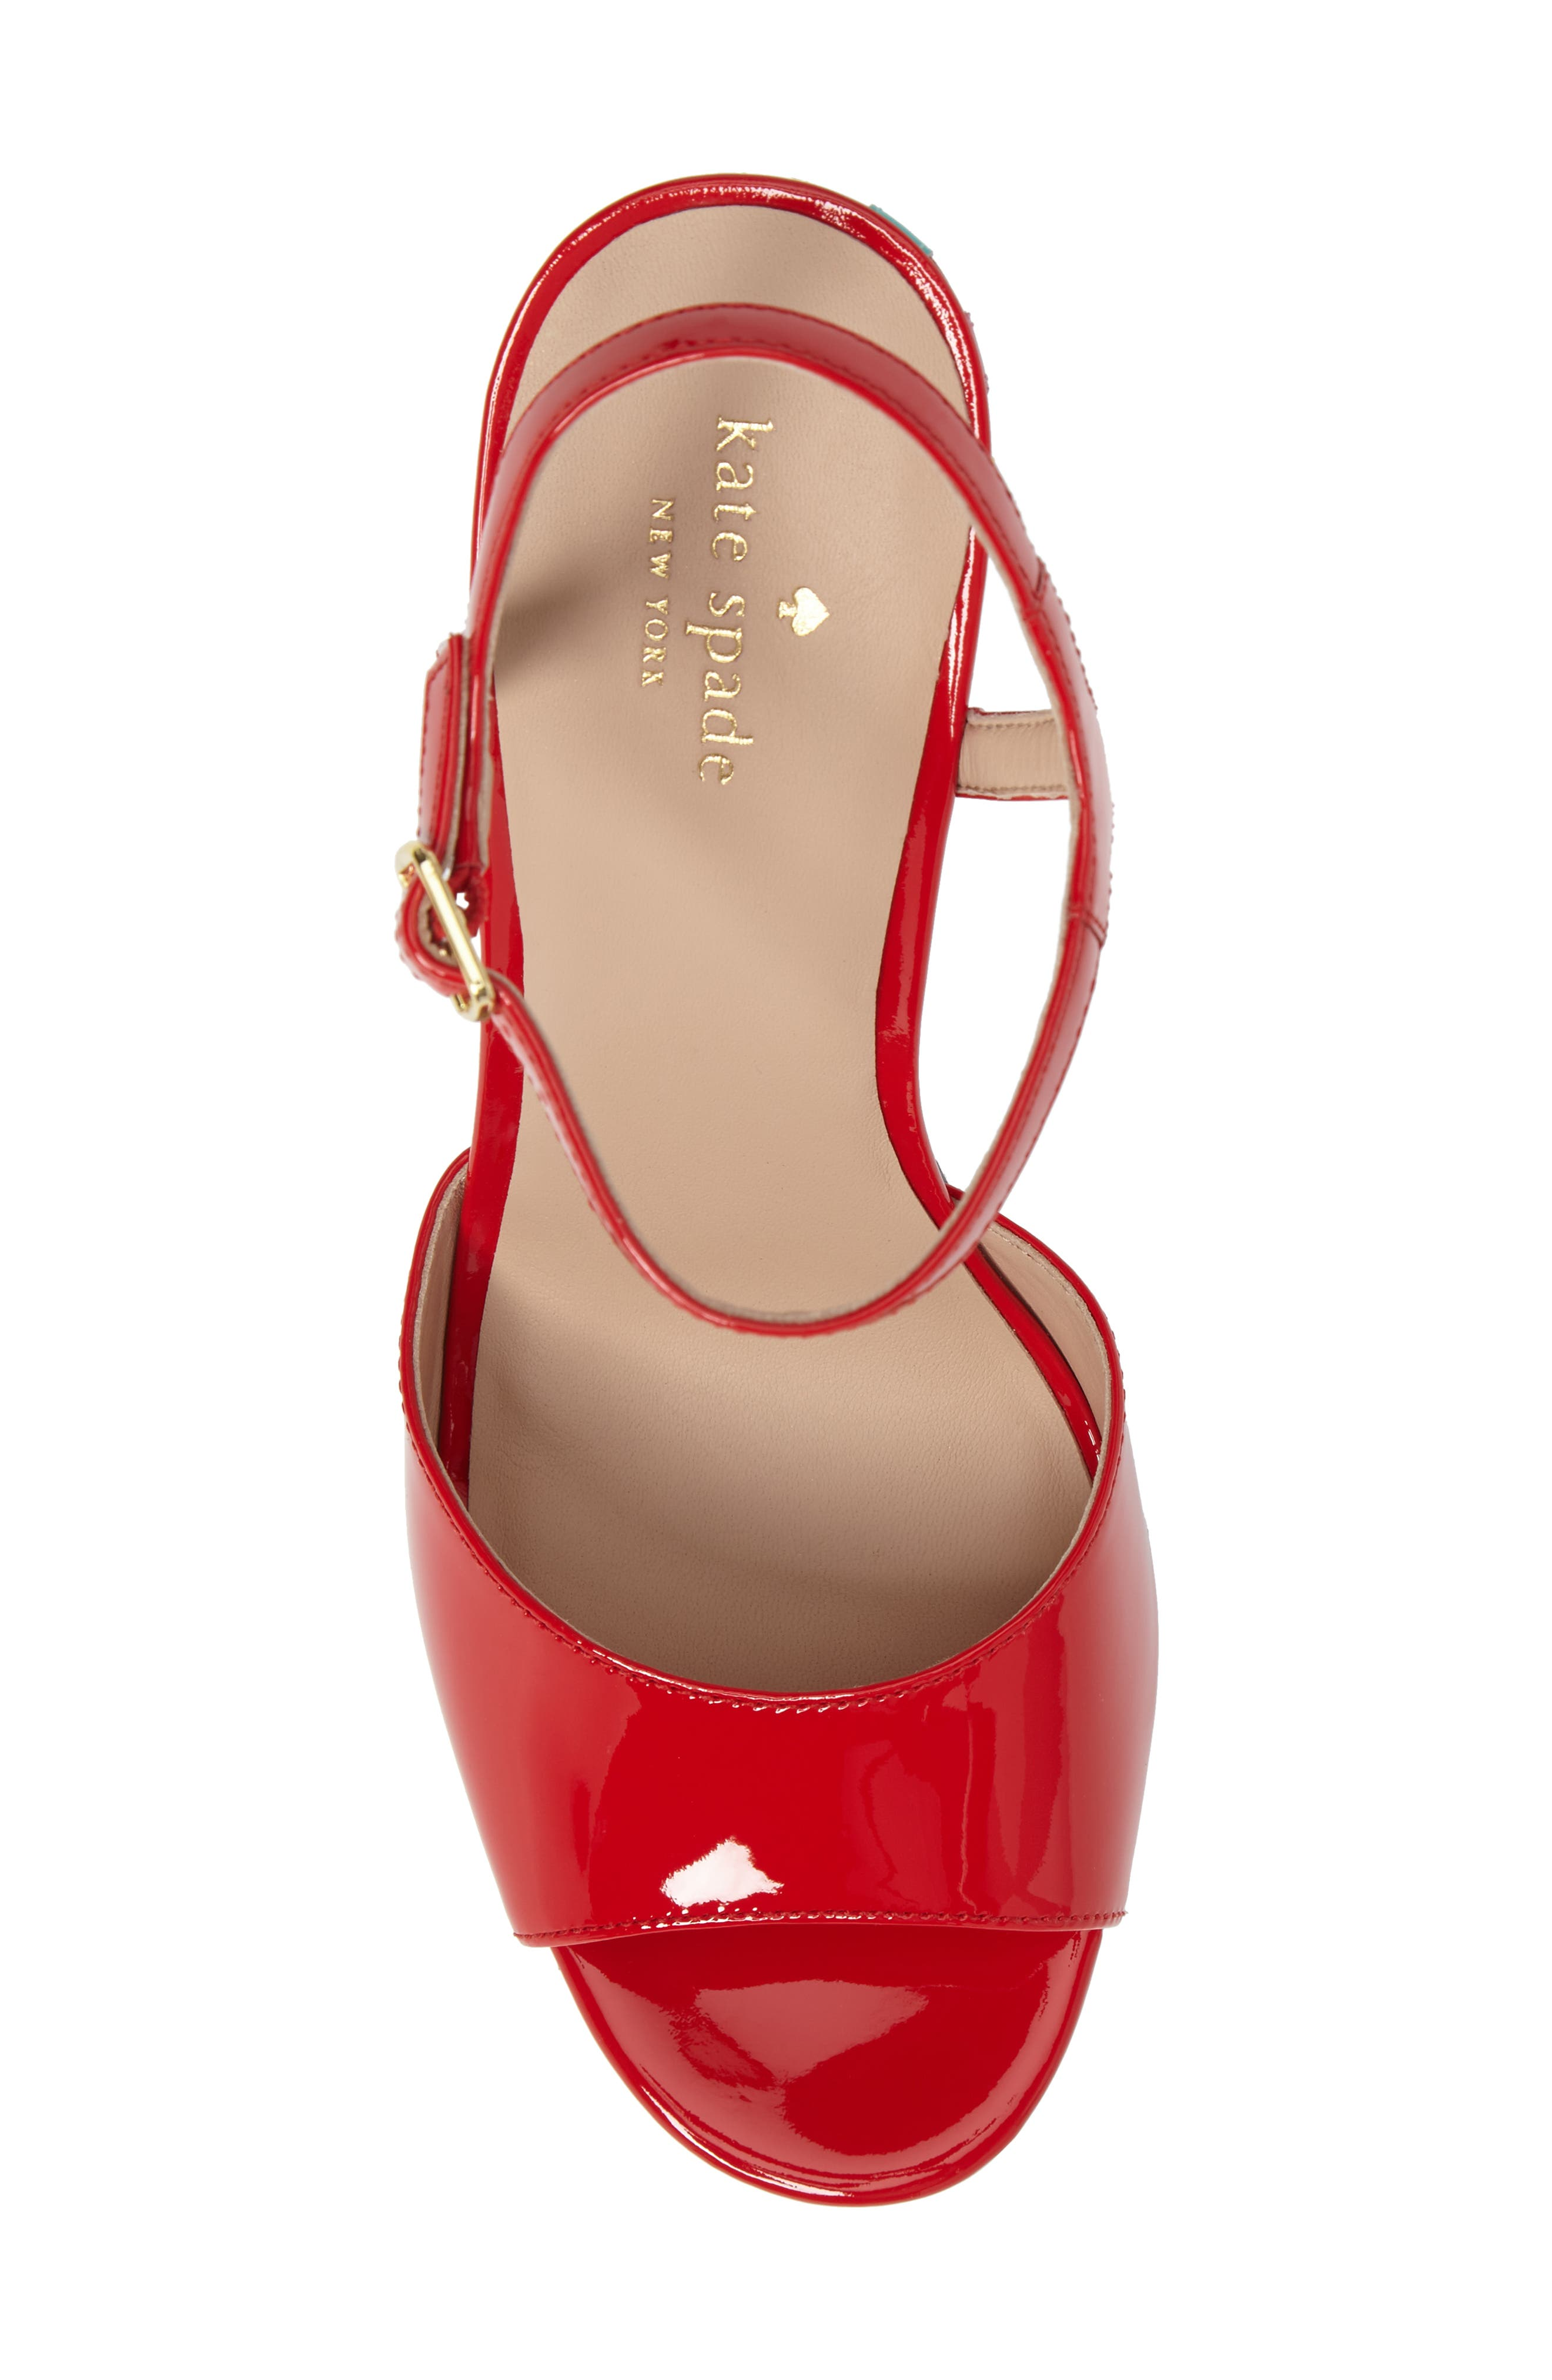 dora wedge sandal,                             Alternate thumbnail 5, color,                             Maraschino Red Patent